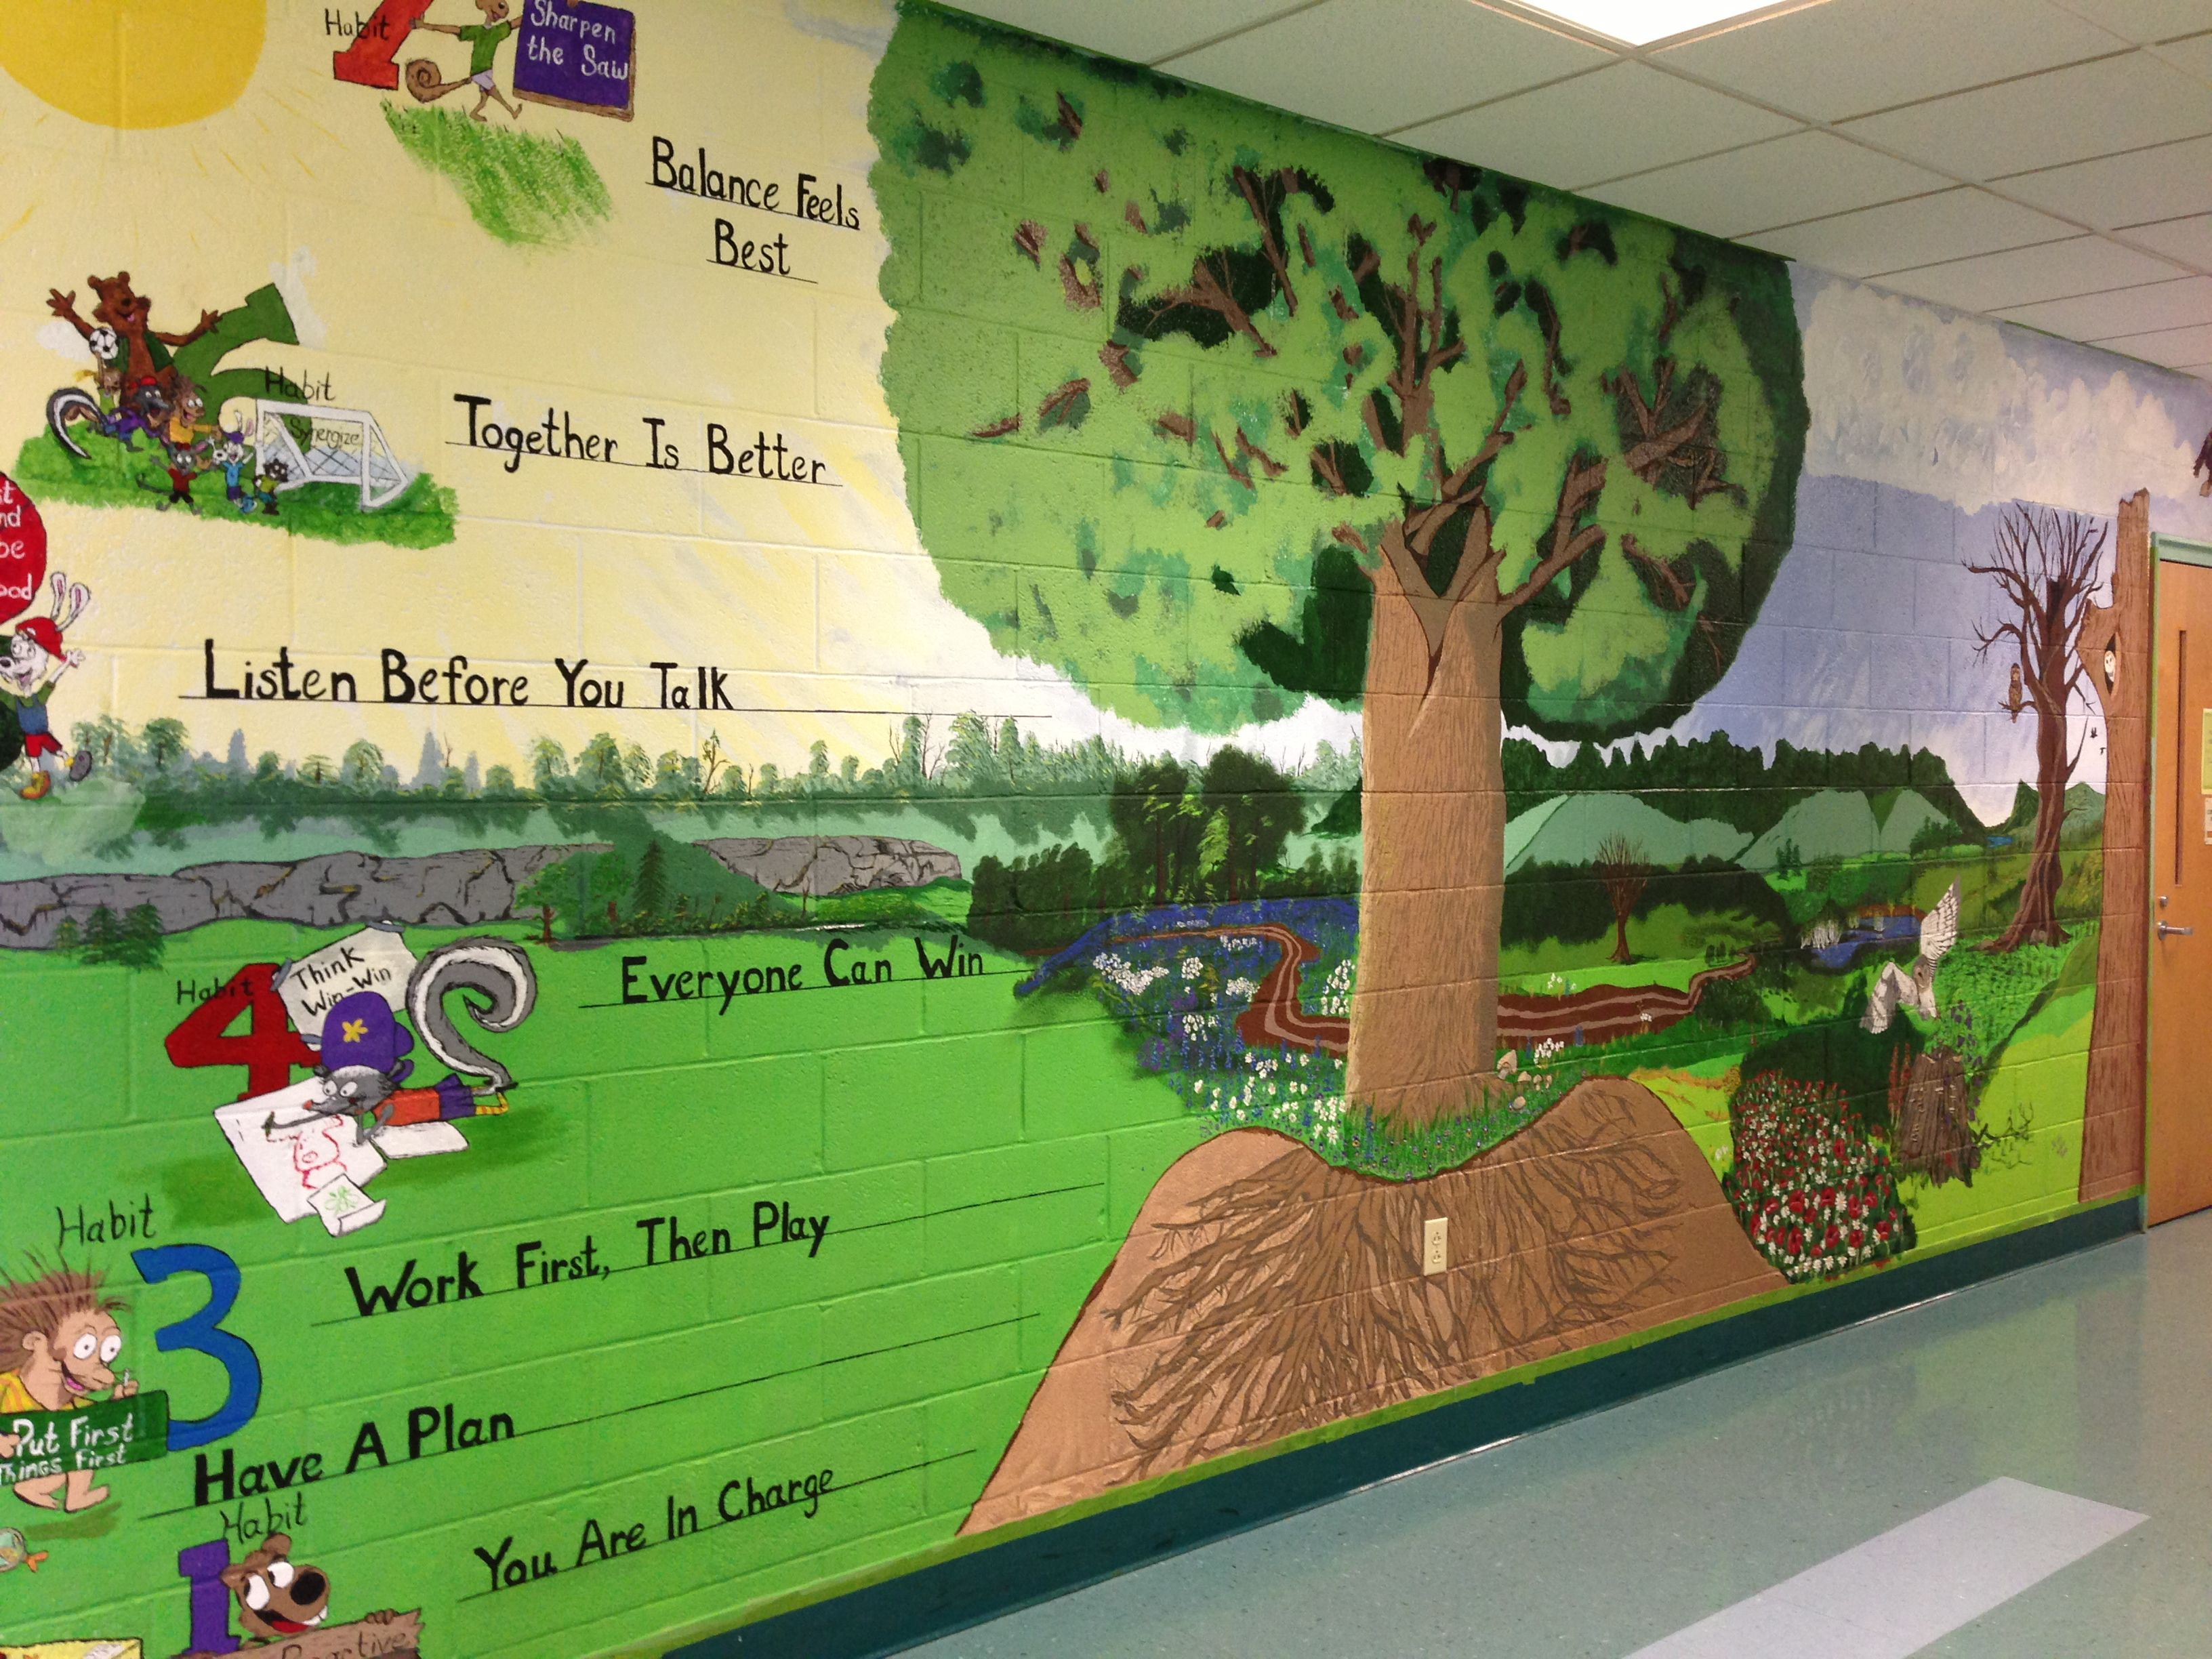 leader in me 7 habits tree bonnieville elementary ky On 7 habits tree mural